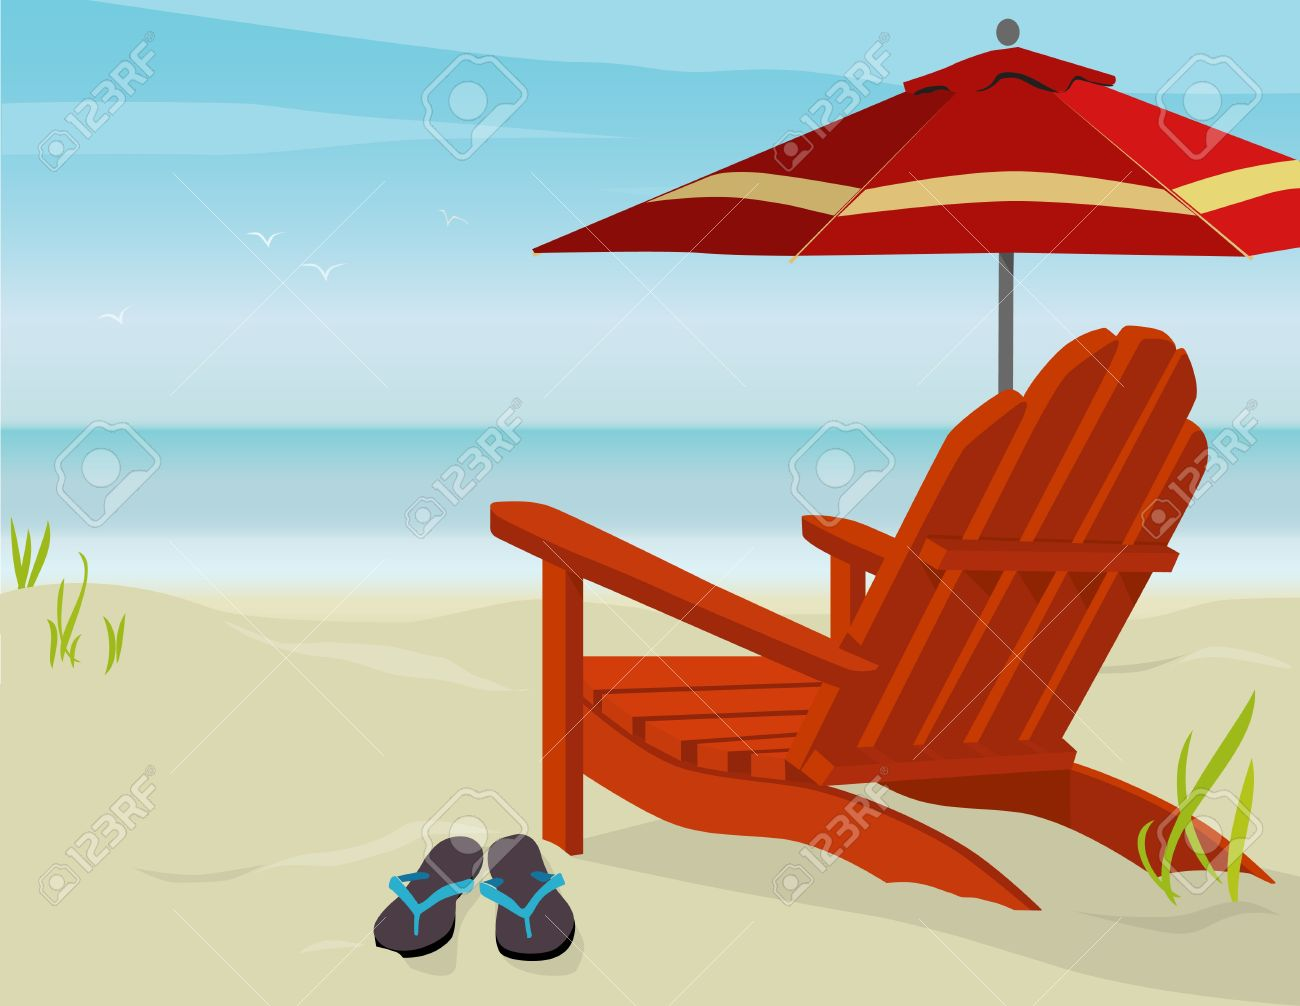 Beach chair back - Beach Chair Adirondack Chair And Market Umbrella At Beach Easy Edit Layered File